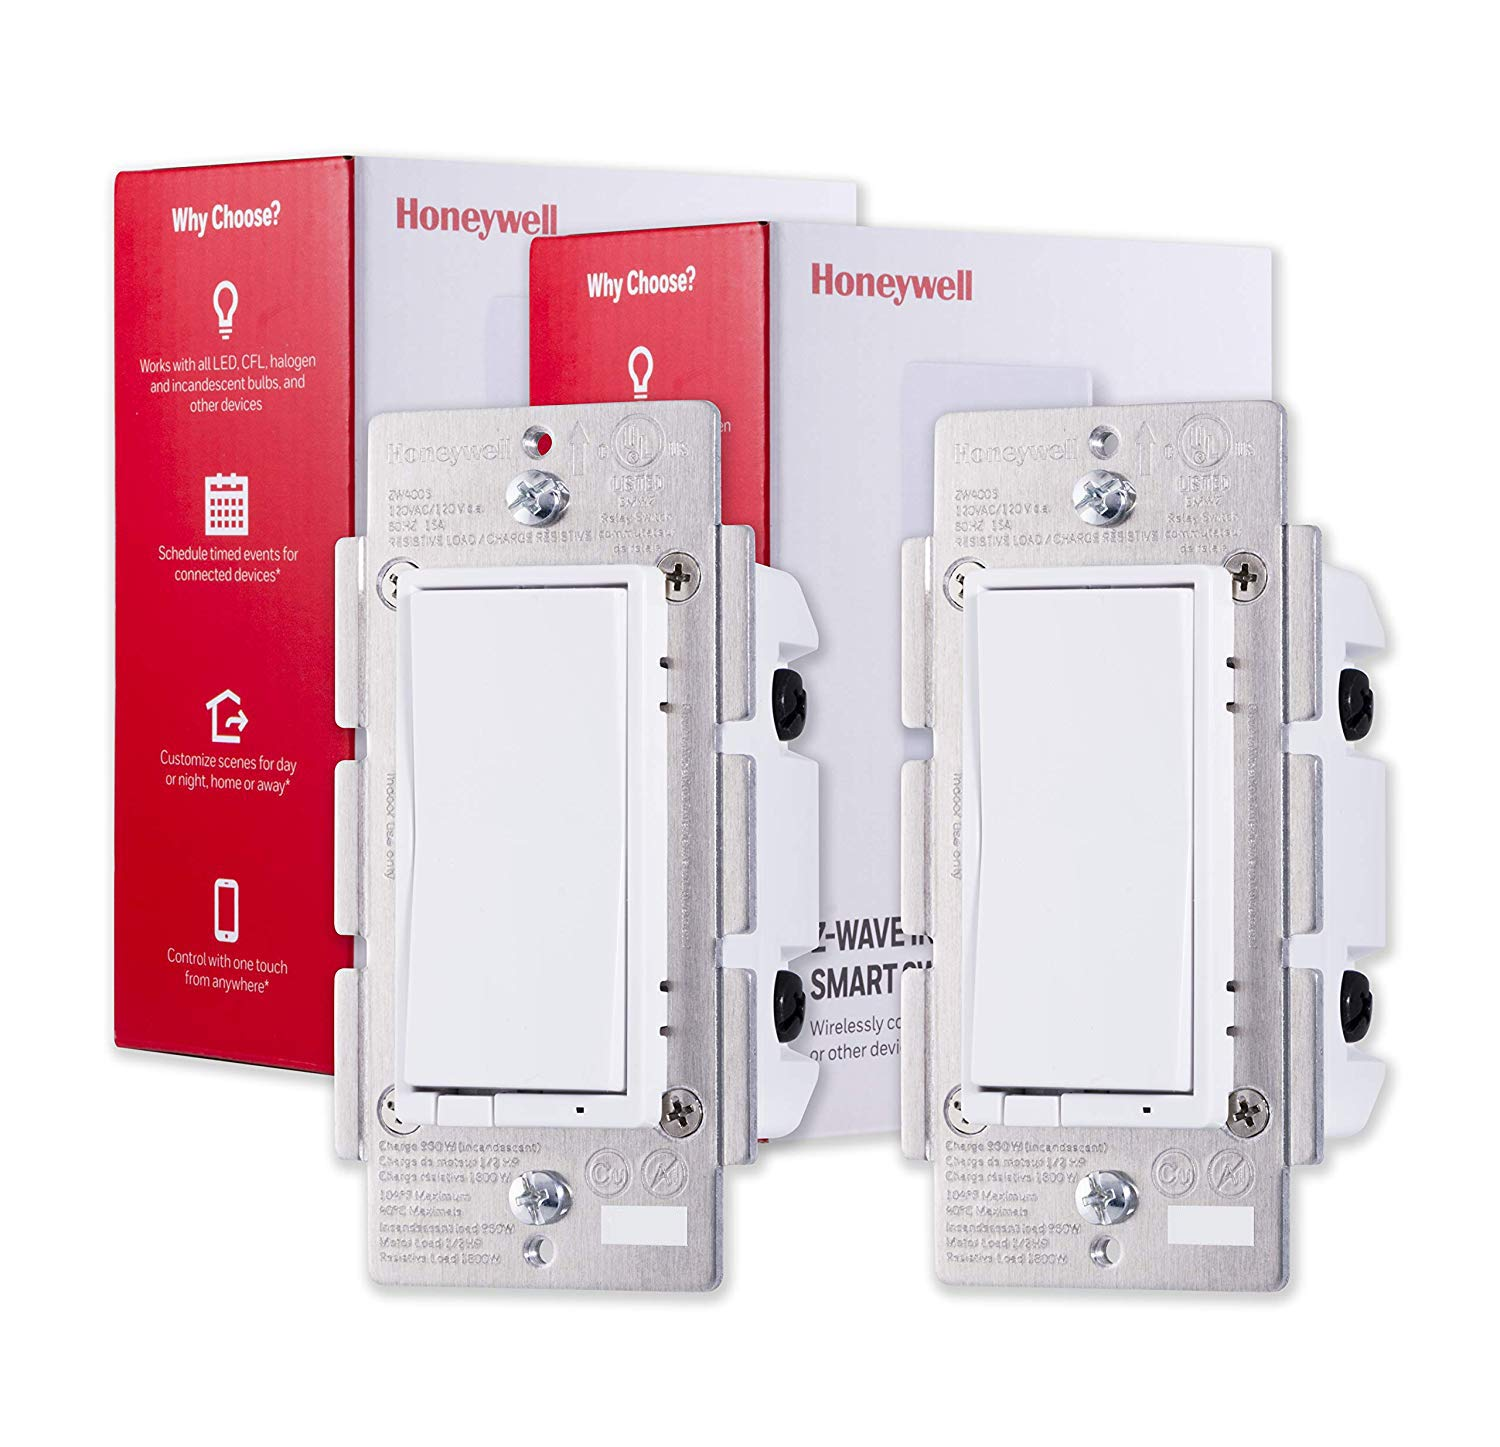 Honeywell Z-Wave Plus On/Off Smart Switch, In-Wall Paddle, Interchangeable White & Almond | Built-In Repeater & Range Extender | ZWave Hub Required - SmartThings, Wink, Alexa Compatible, 2-pack, 44946